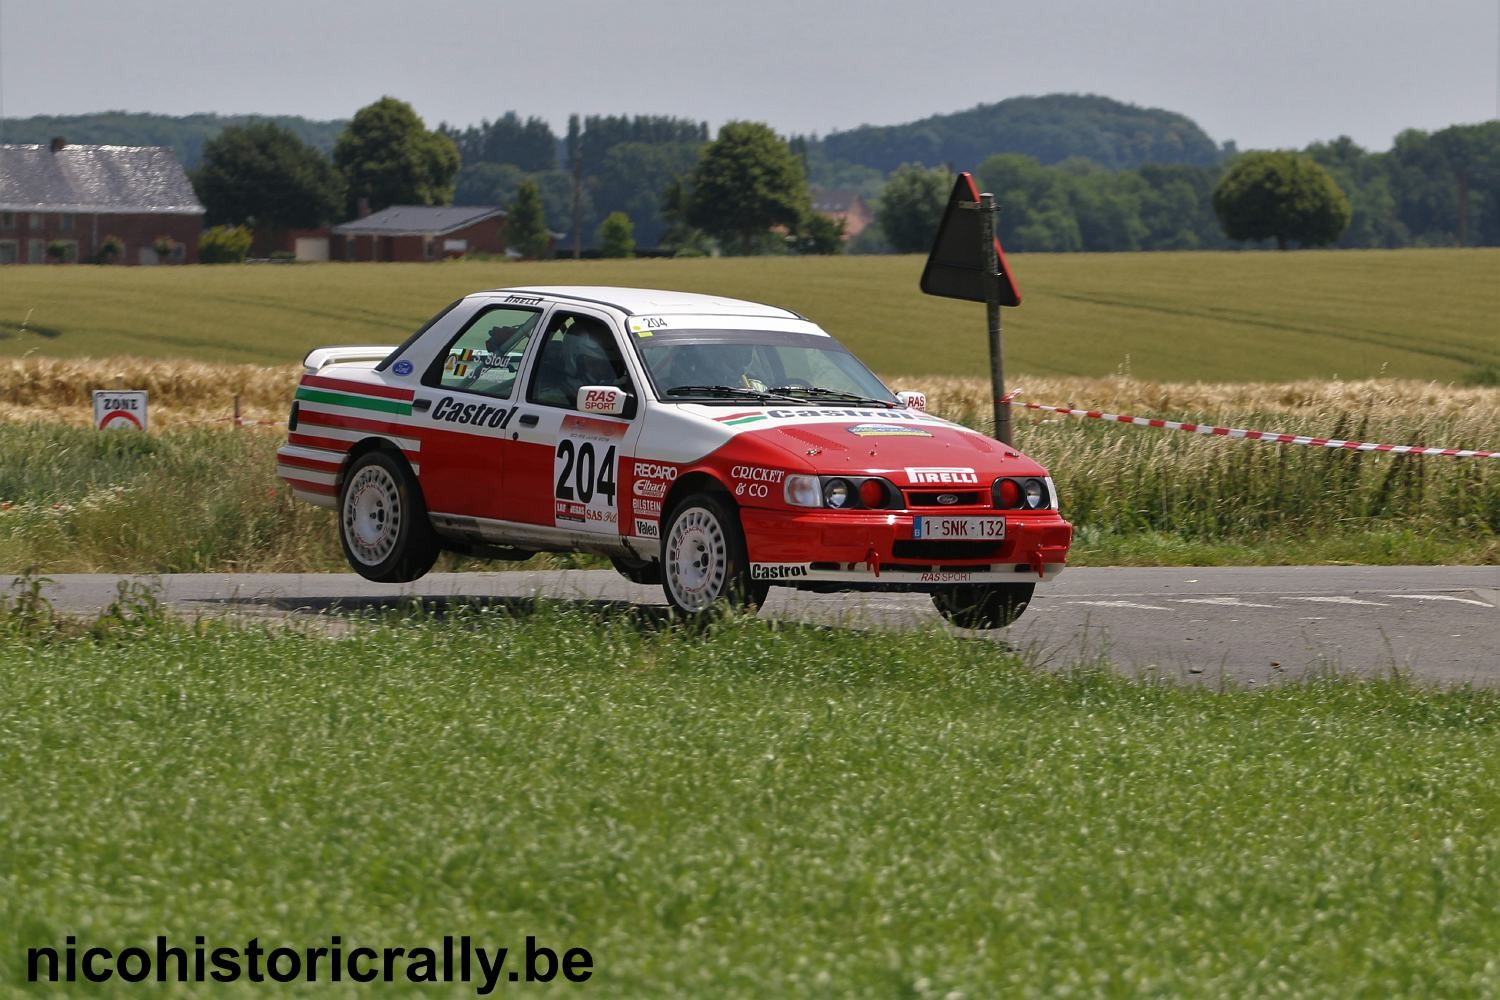 Stefaan Stouf en Joris Erard in de Fia Historic Rally.